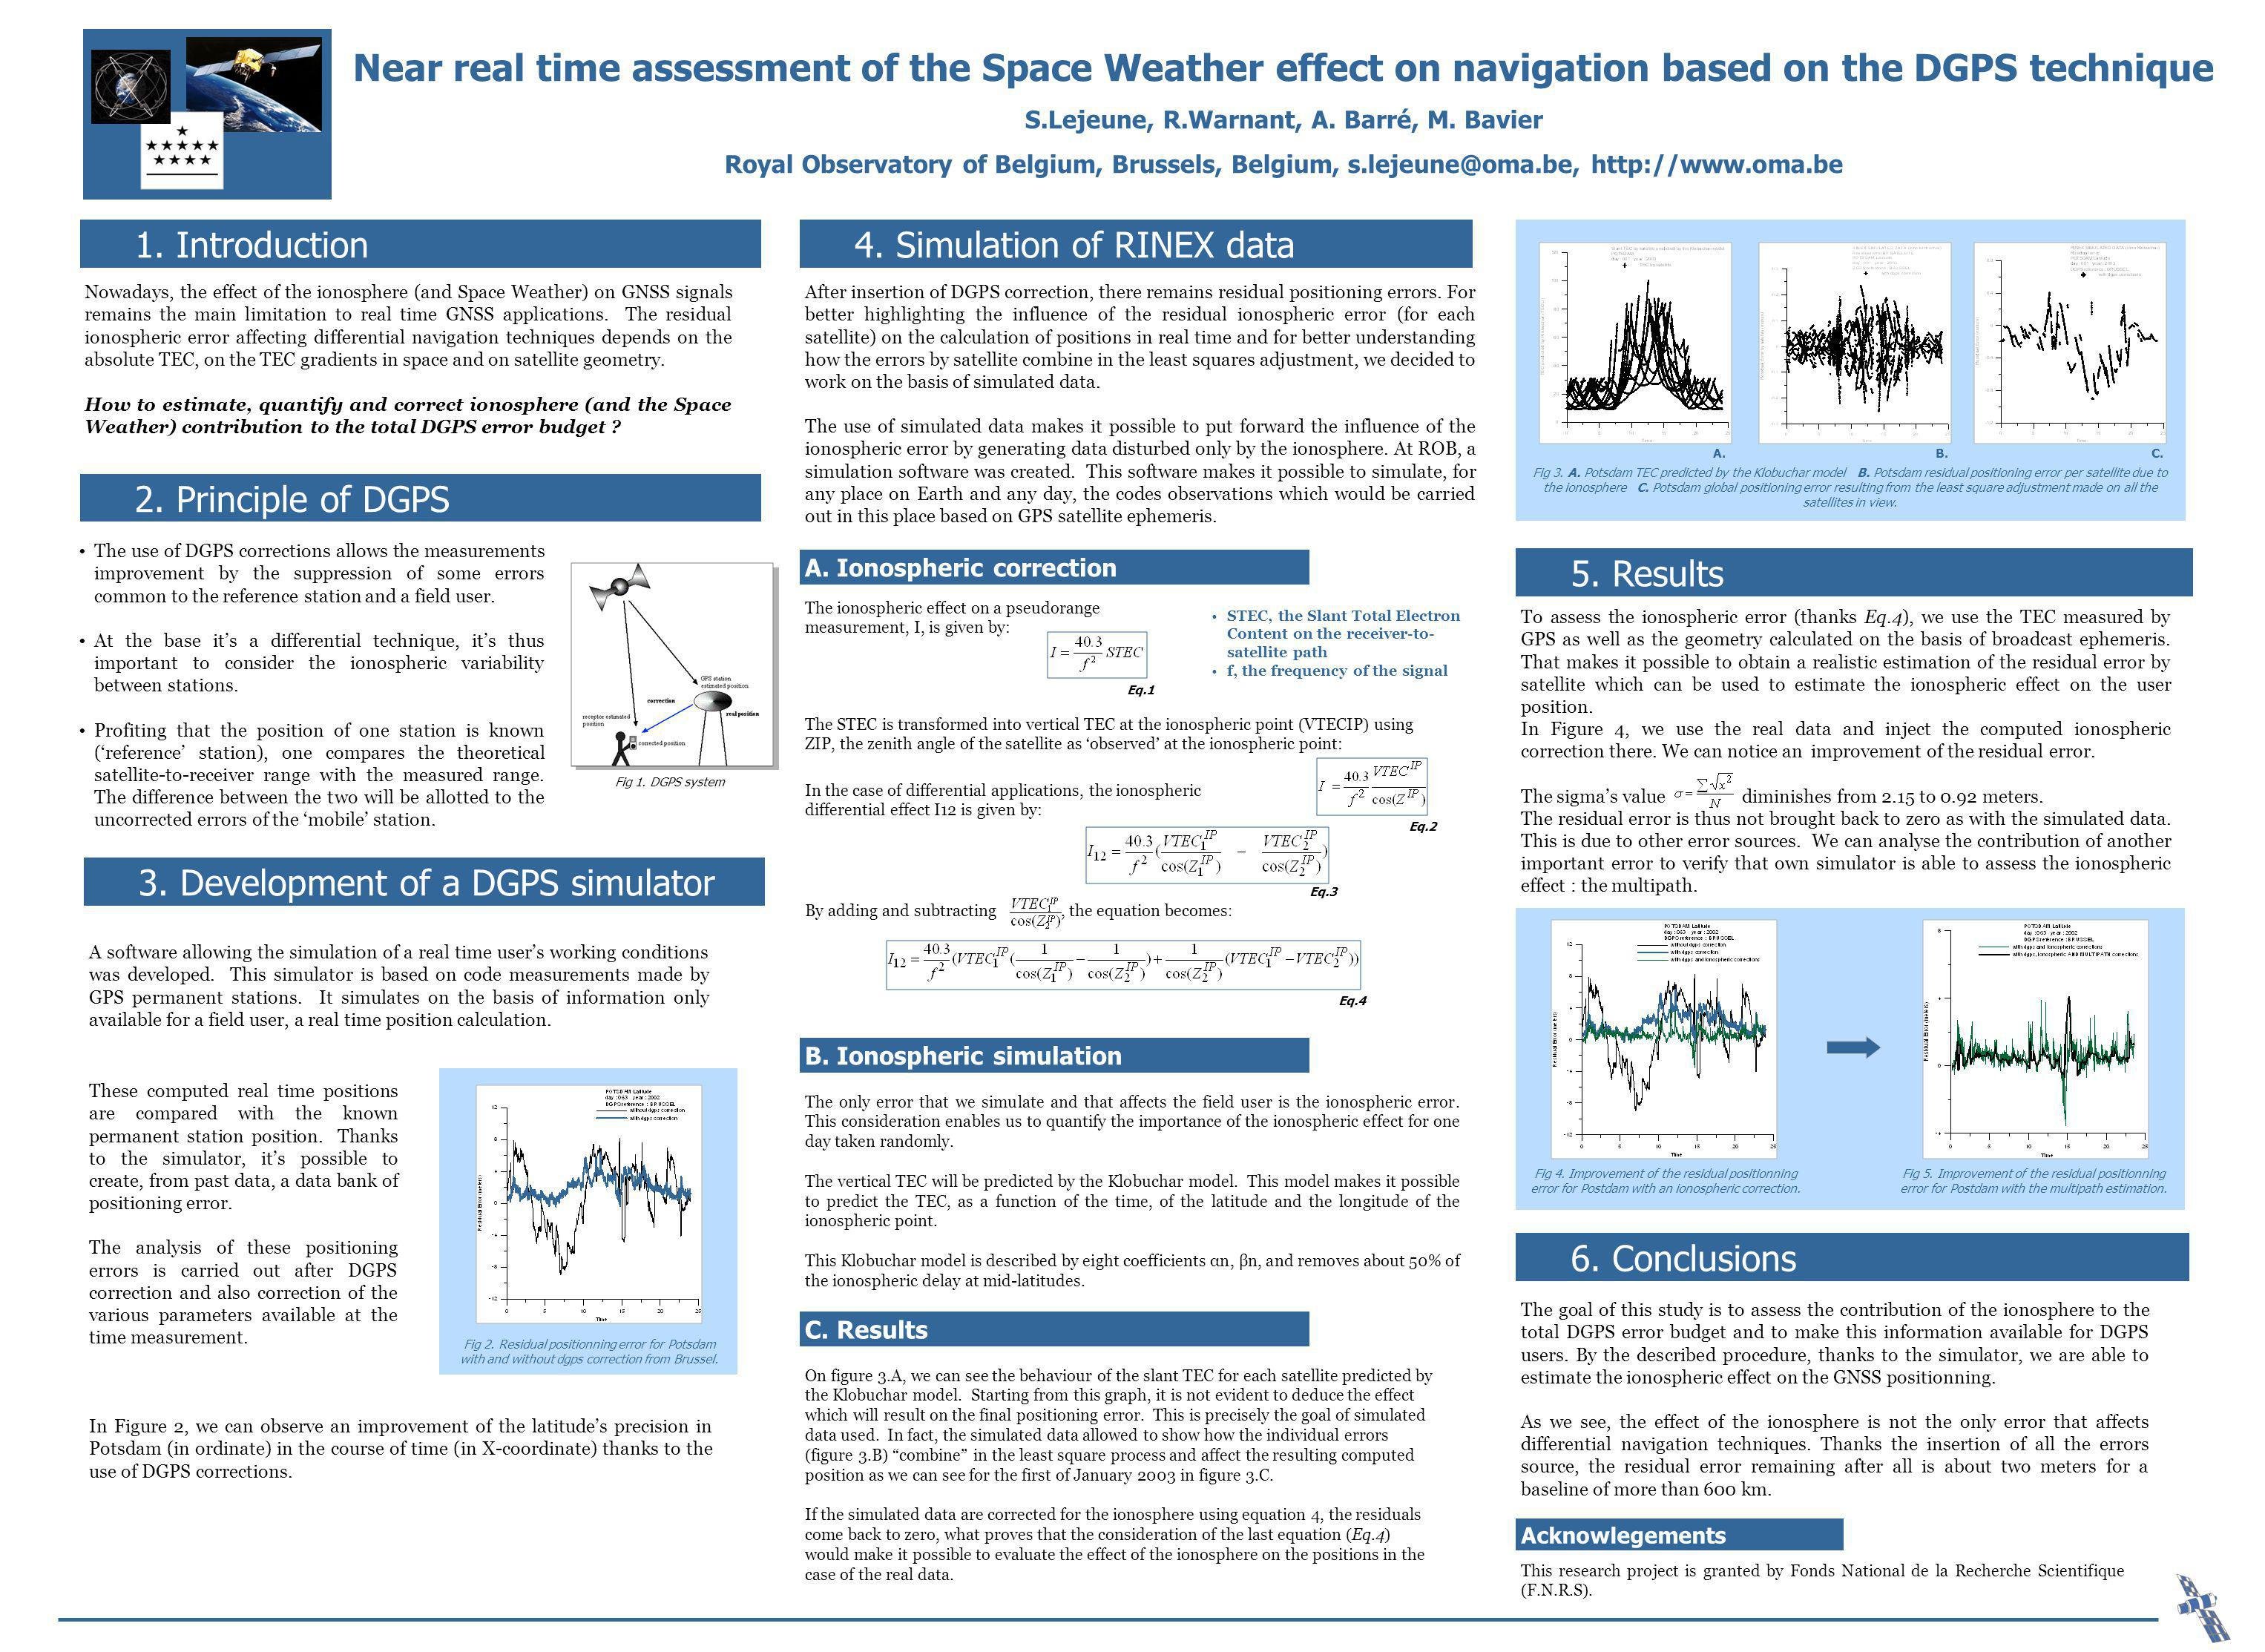 Near real time assessment of the Space Weather effect on navigation based on the DGPS technique S.Lejeune, R.Warnant, A.